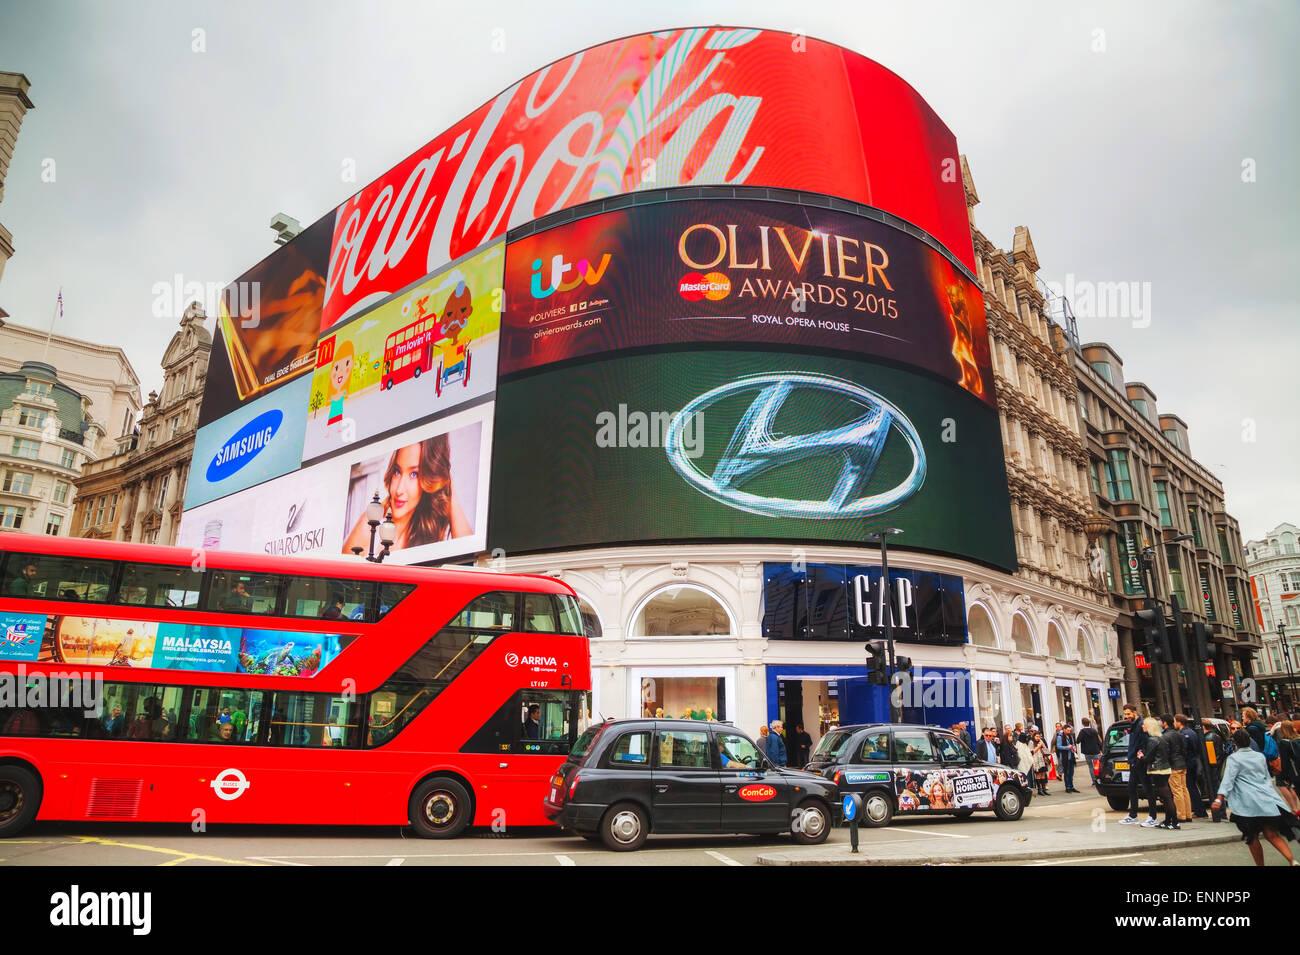 LONDON - APRIL 13: Piccadilly Circus junction crowded by people on April 13, 2015 in London, UK. - Stock Image